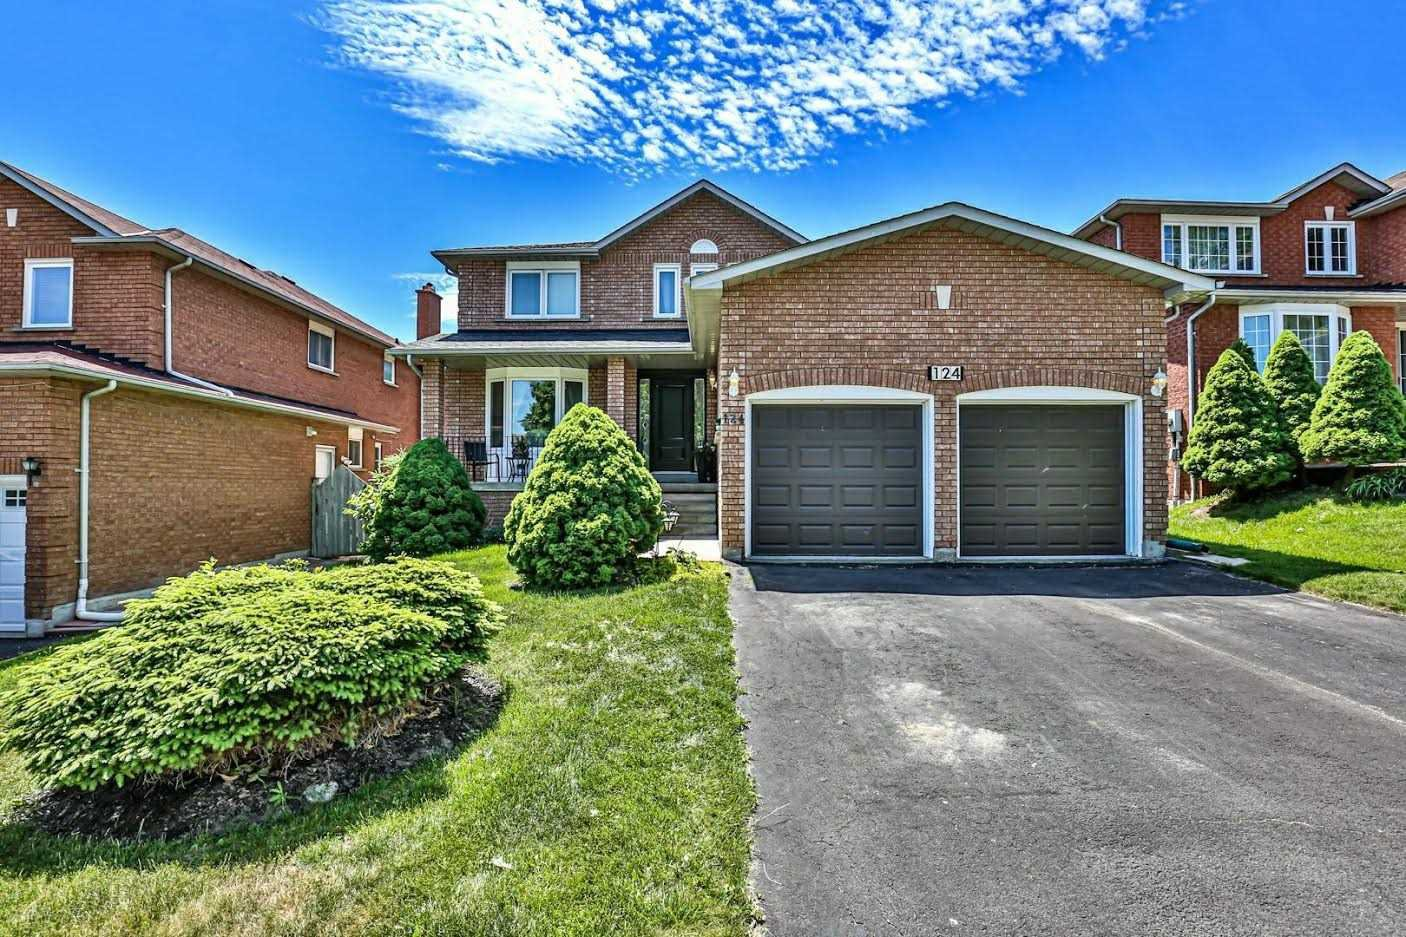 Main Photo: 124 Goldsmith Crescent in Newmarket: Armitage House (2-Storey) for sale : MLS®# N4792301